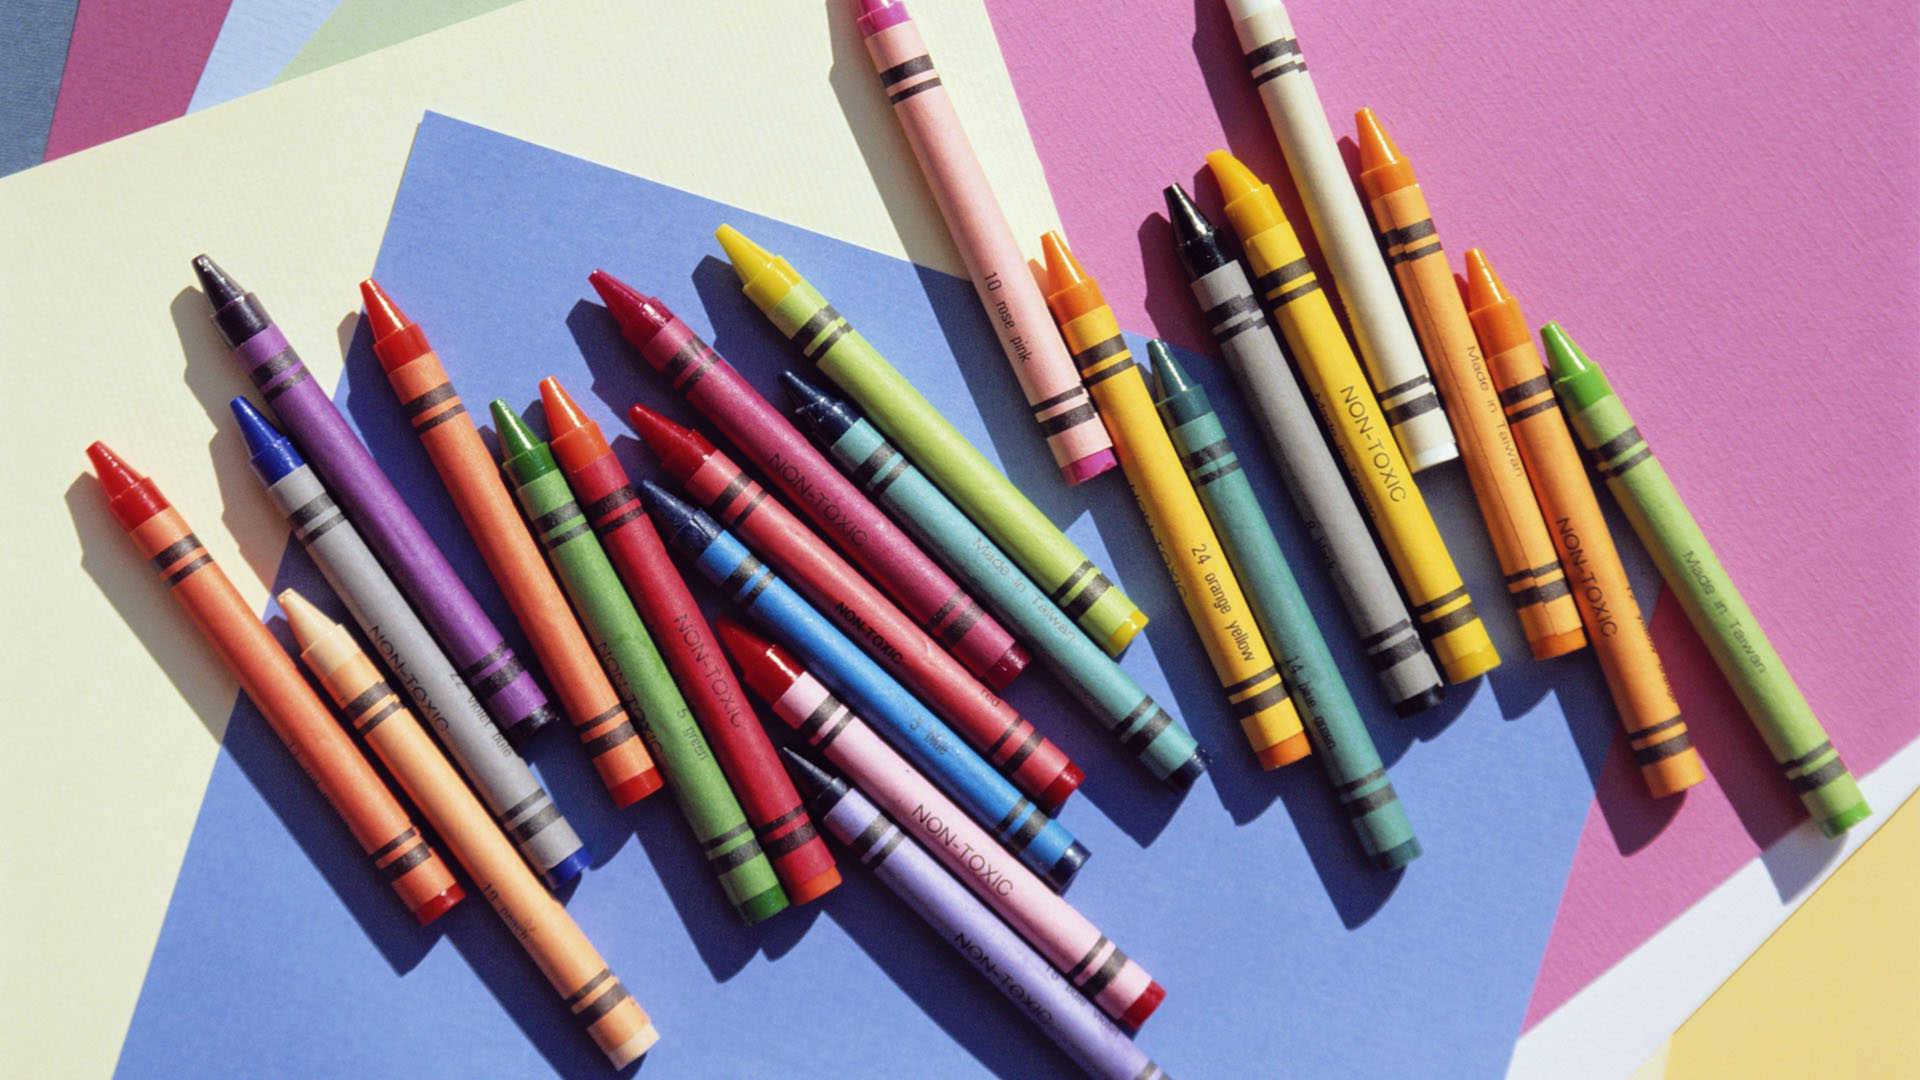 images of colored pencils